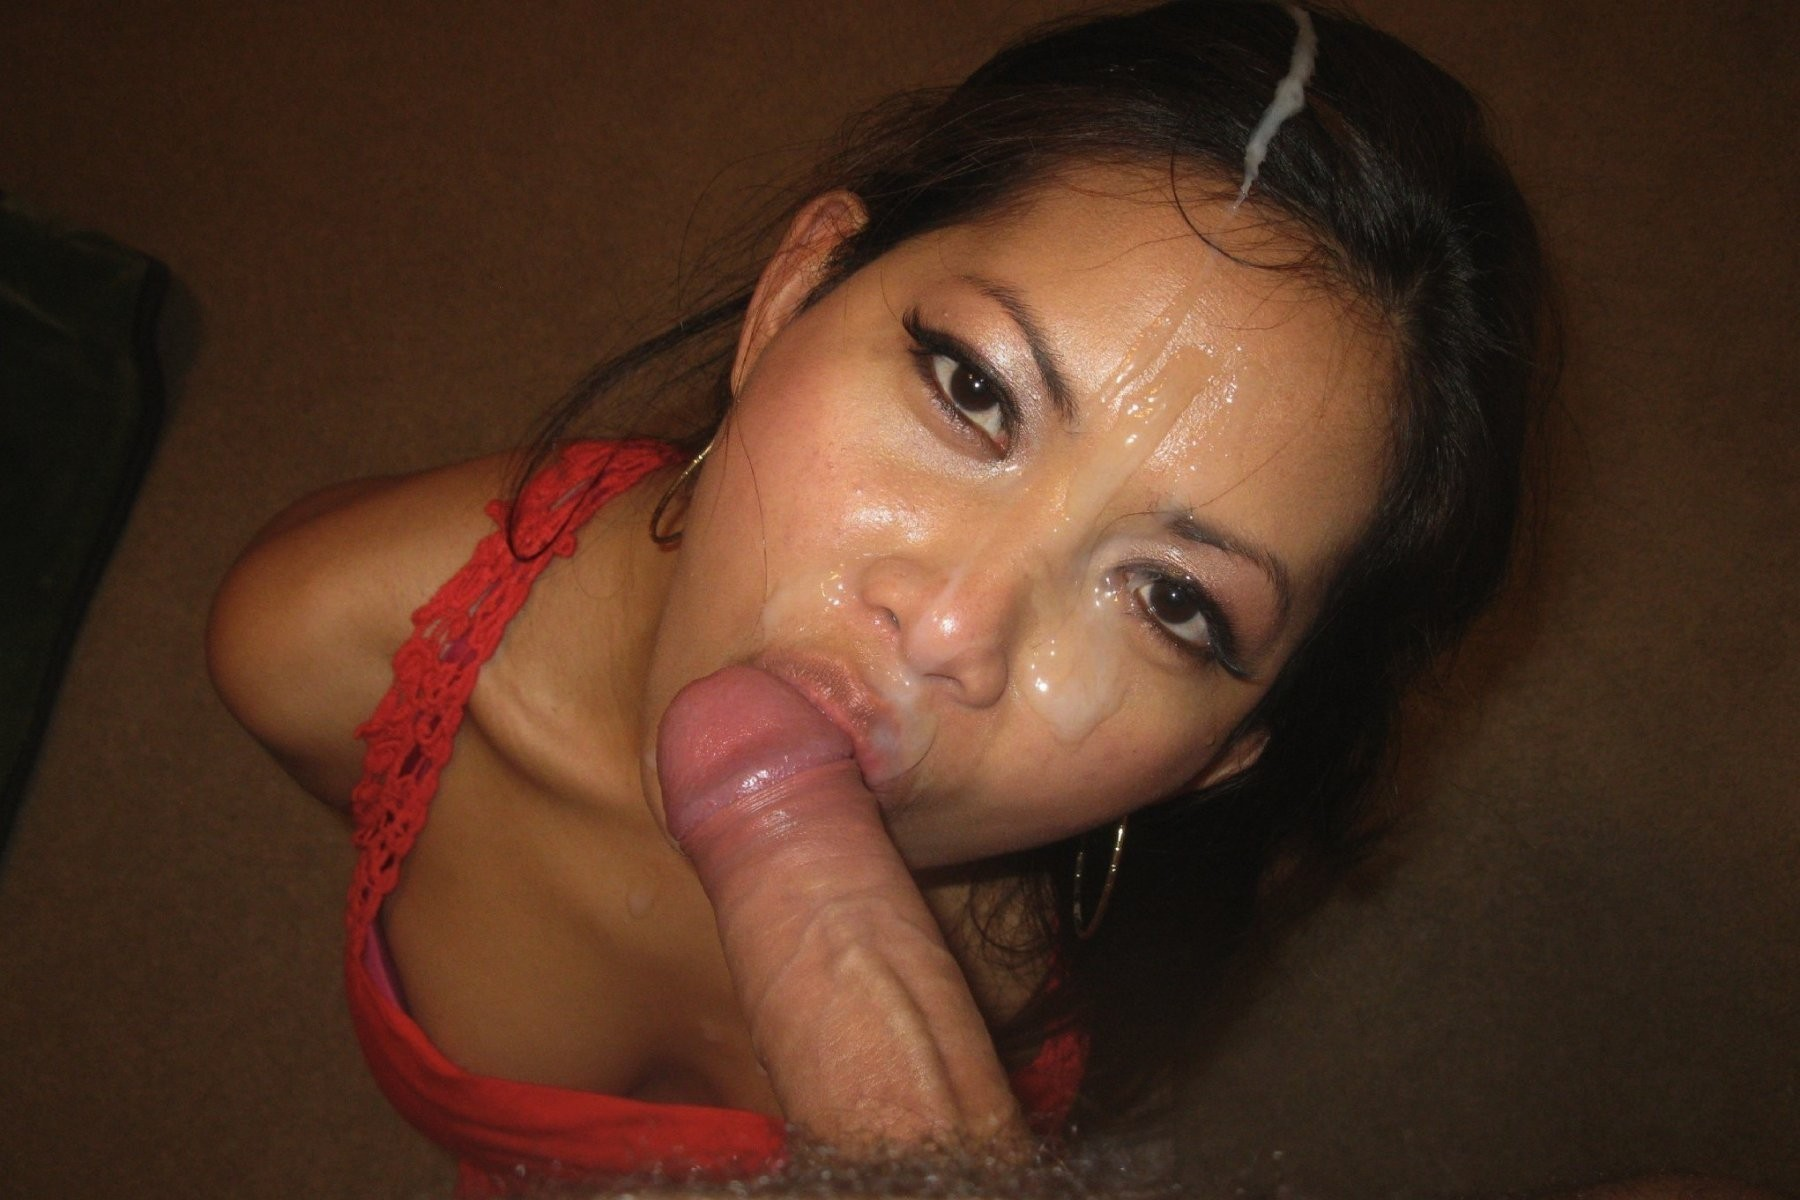 Mexican blowjob